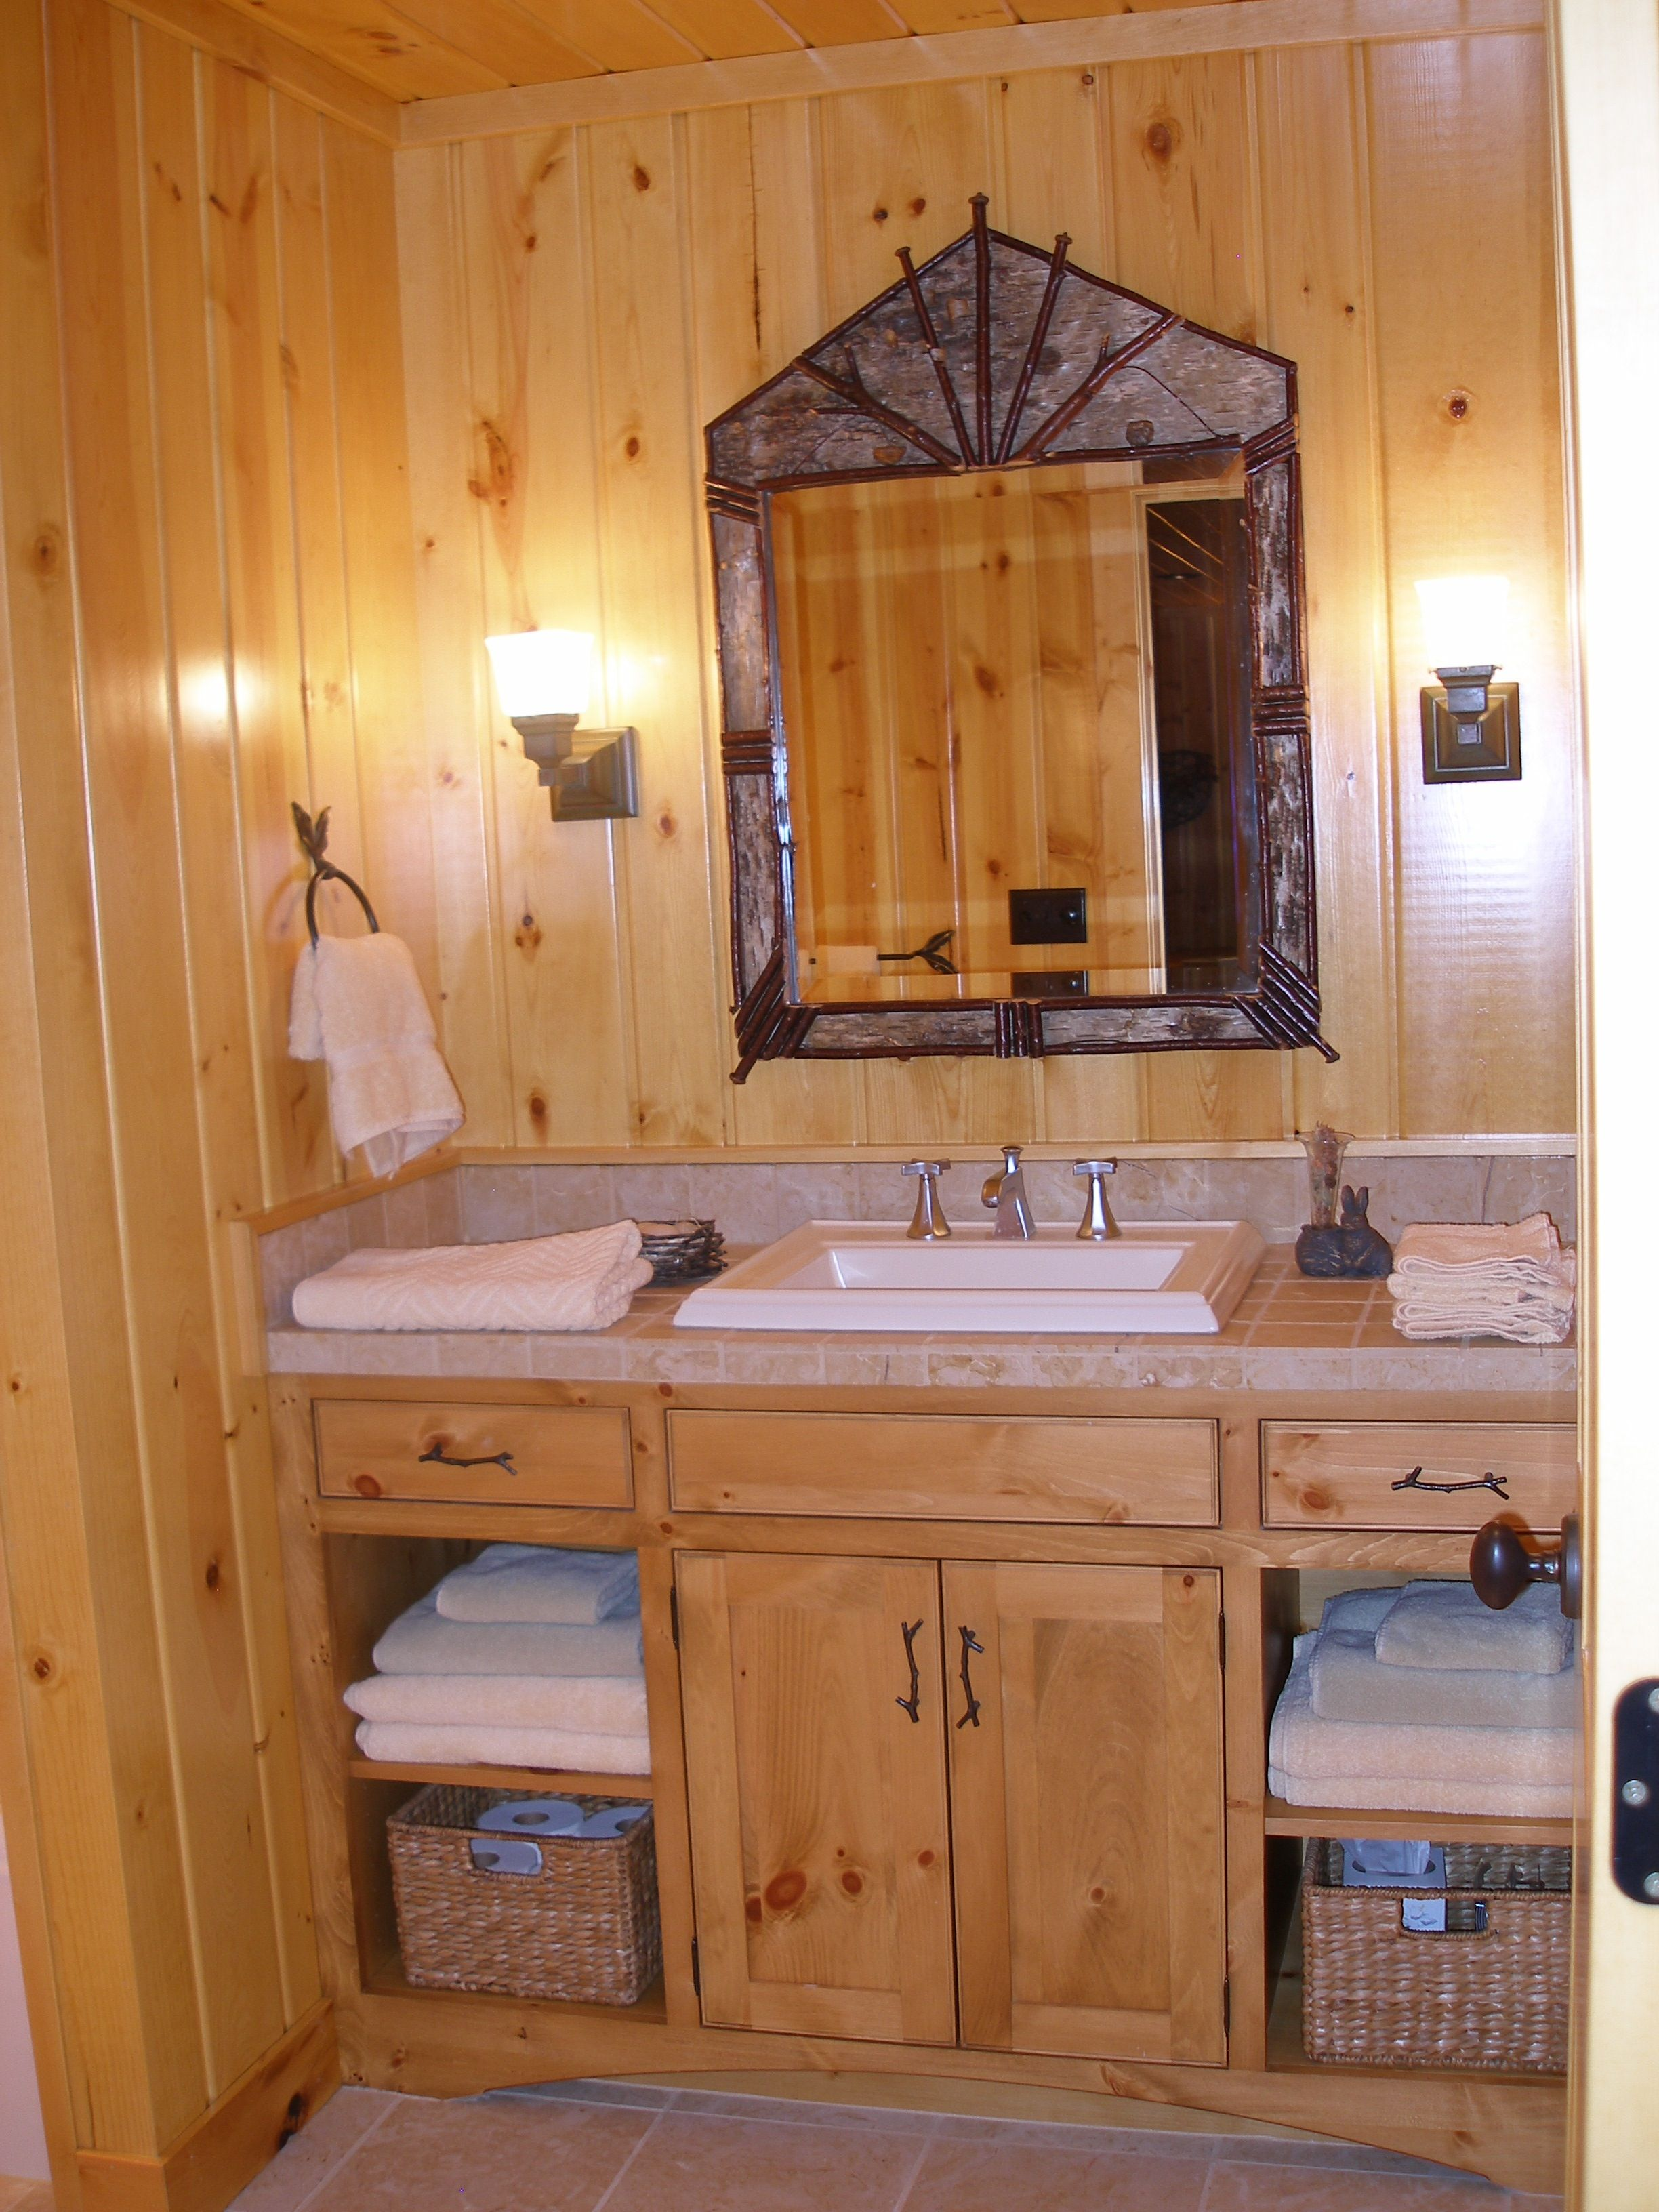 A Lower Level Guest Bathroom In A Log Home In Phelps Wi